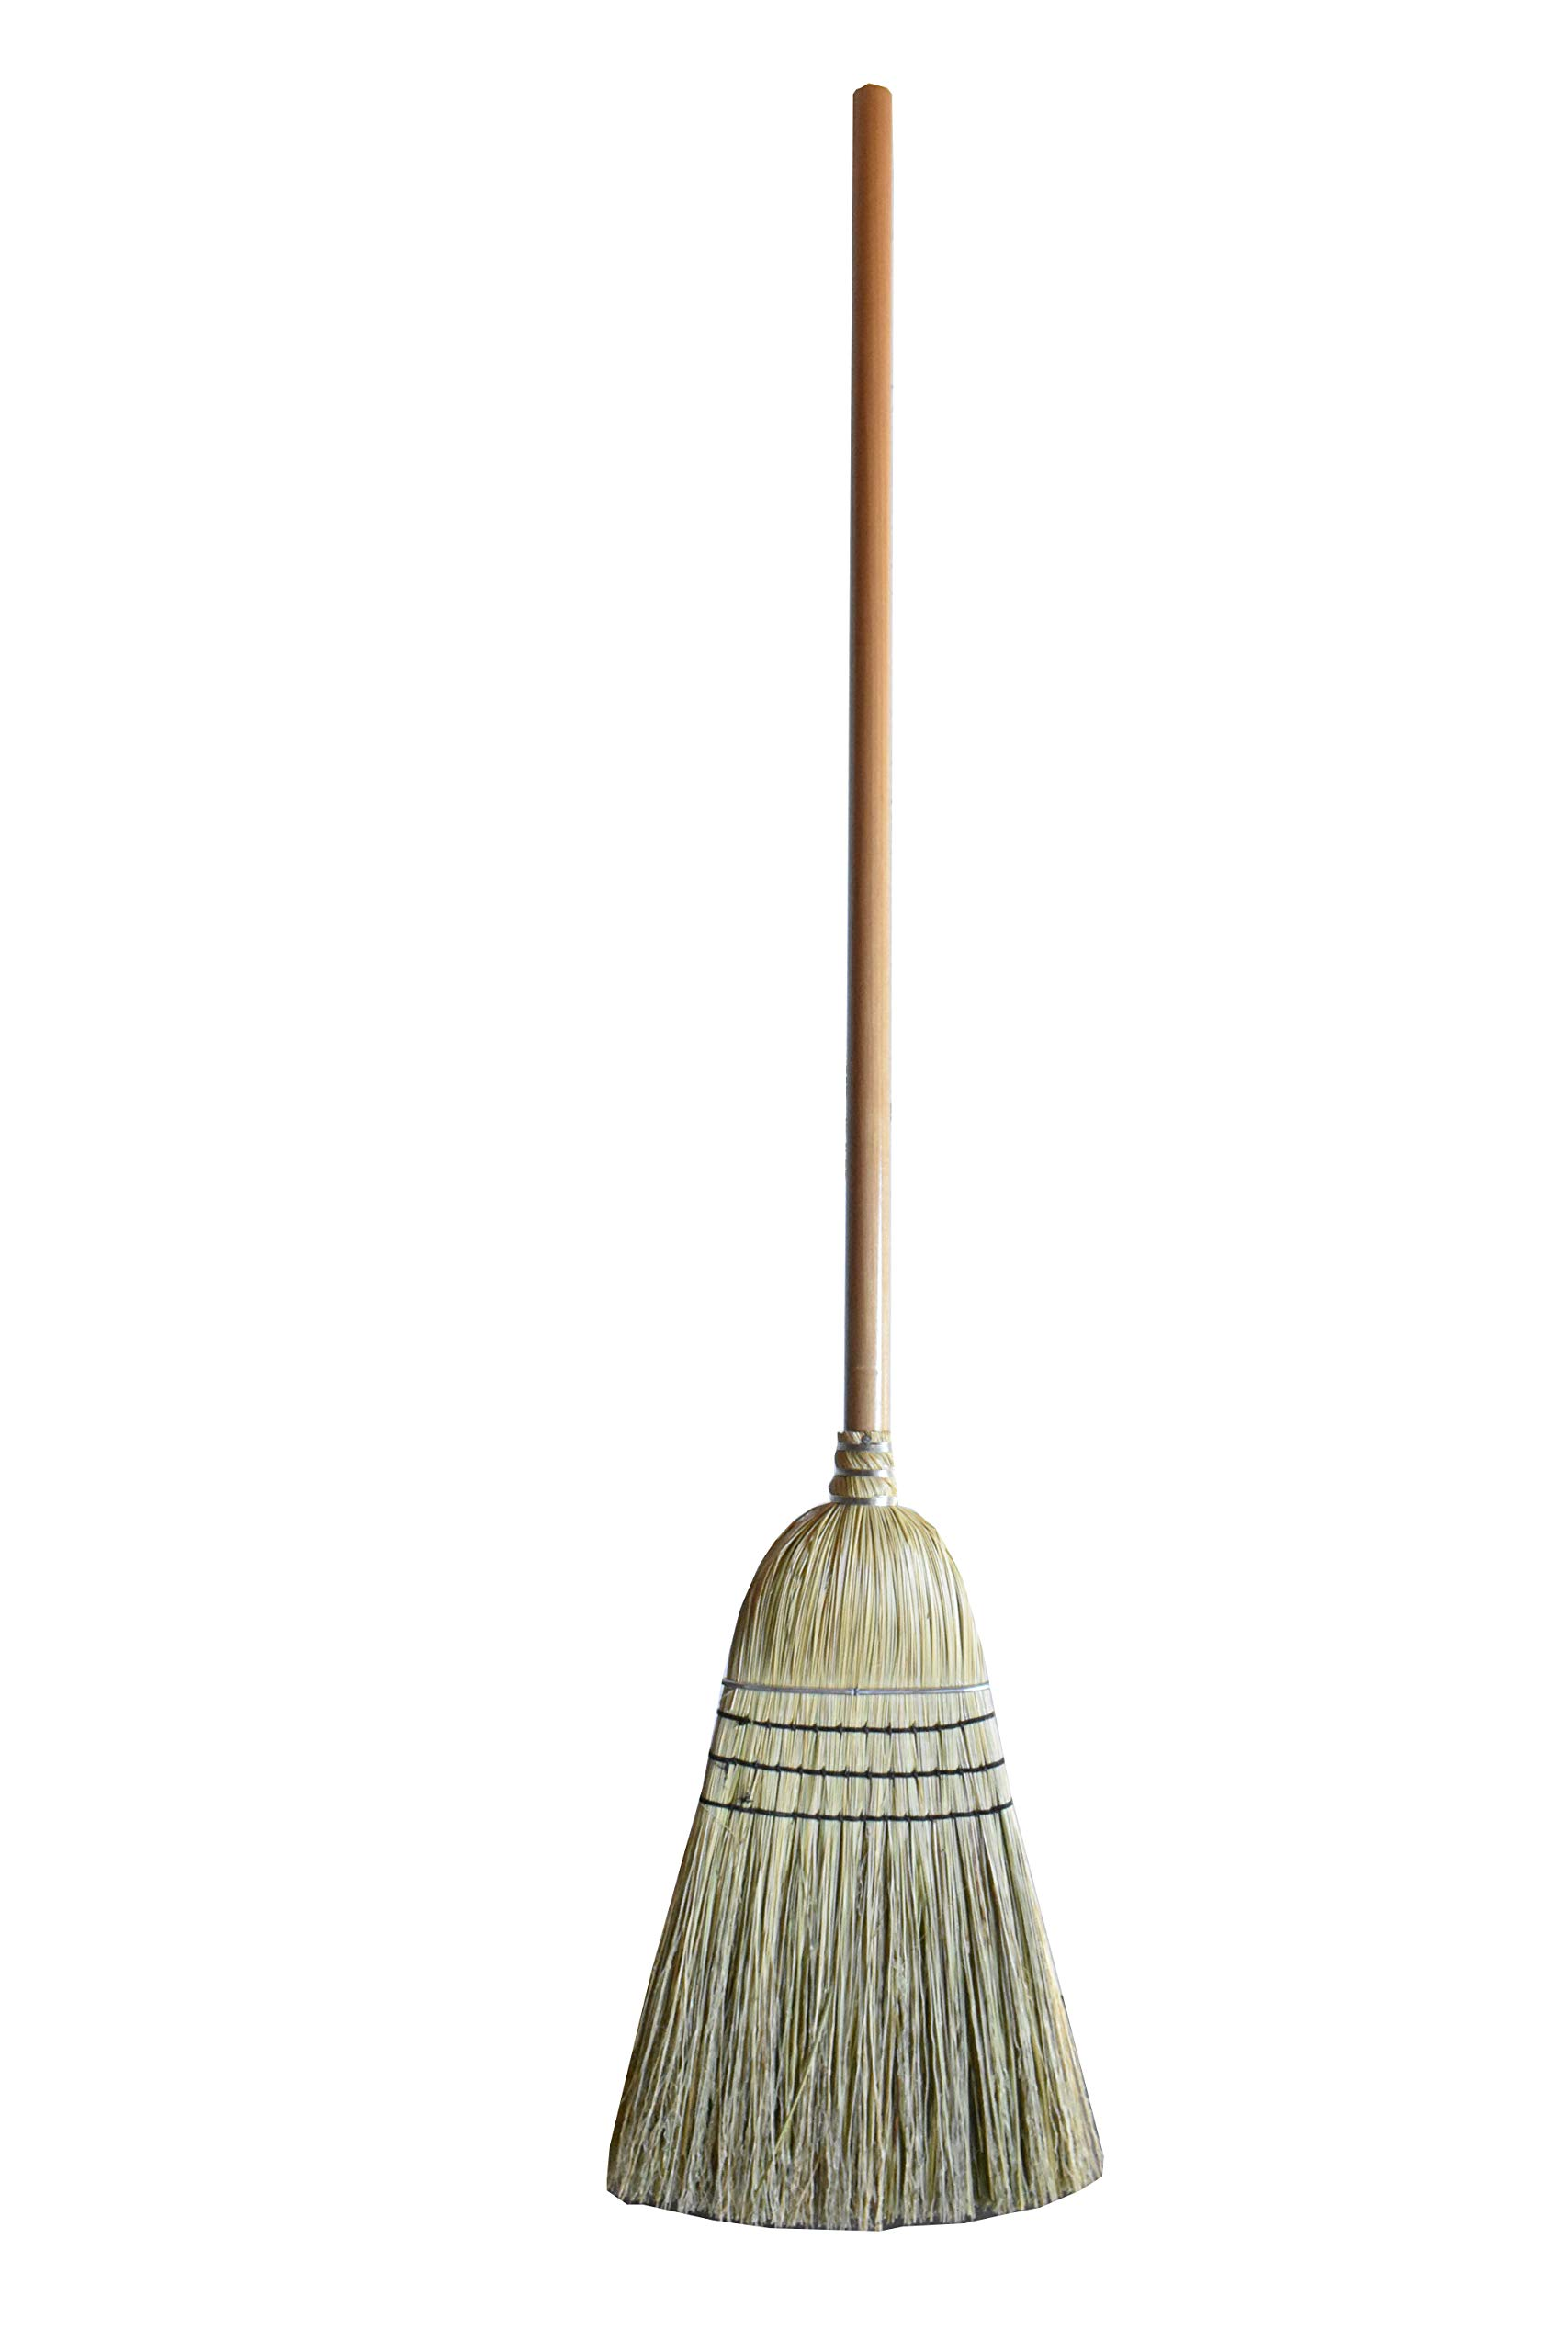 6 Pack Corn Straw Warehouse Broom for Sweeping Cleaning